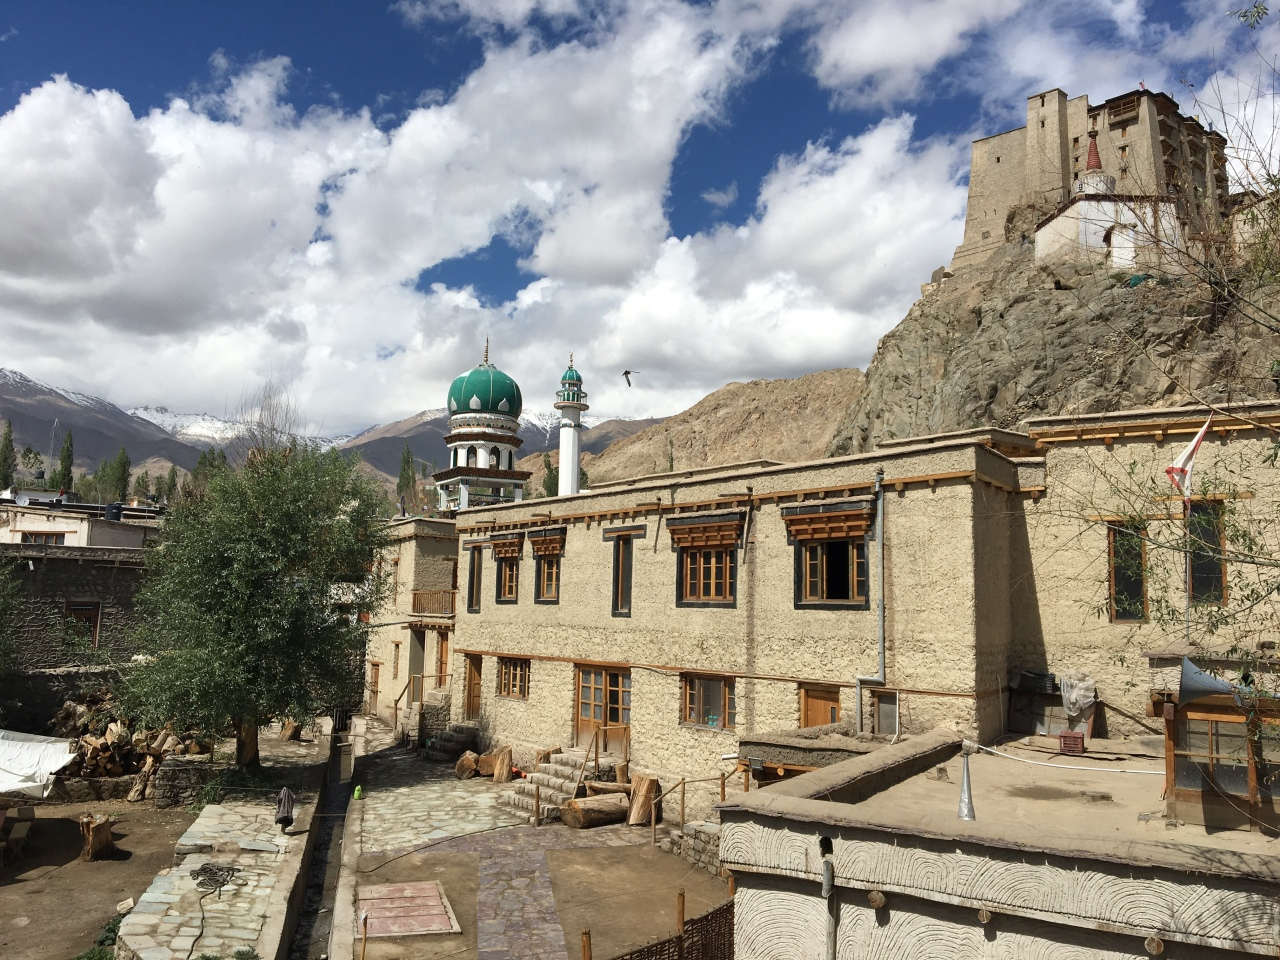 Back in Leh